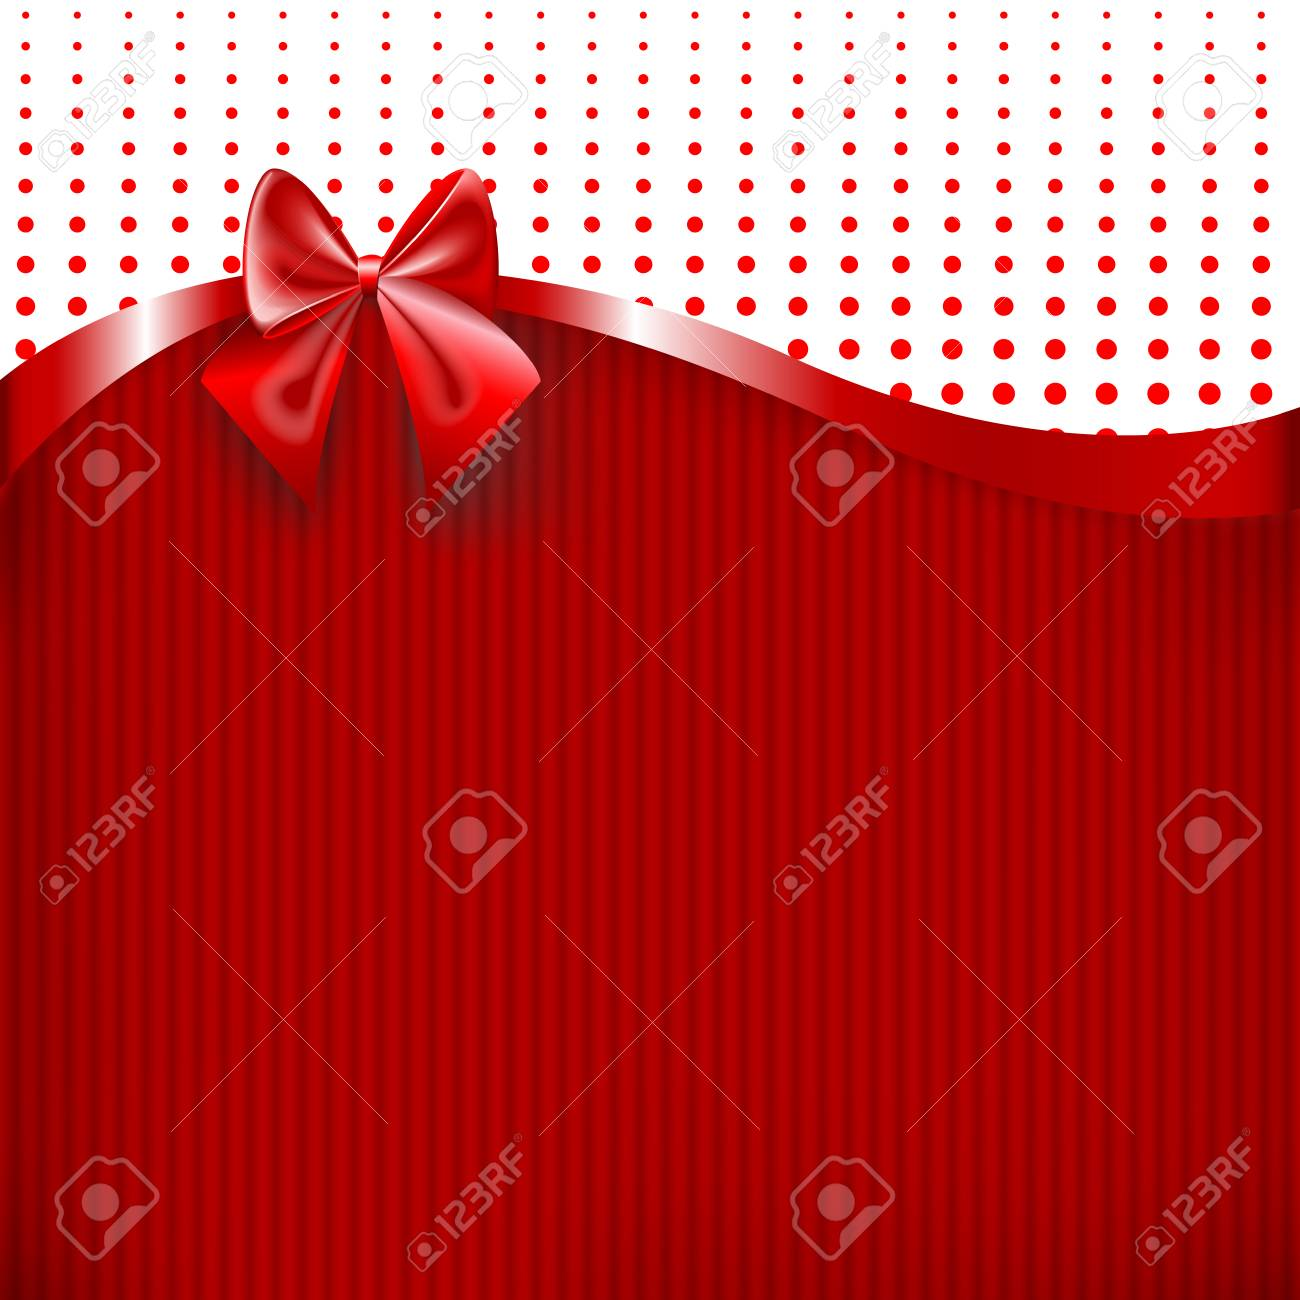 Red Ribbon And Bow On Red Paper Texture Background Vector Illustration